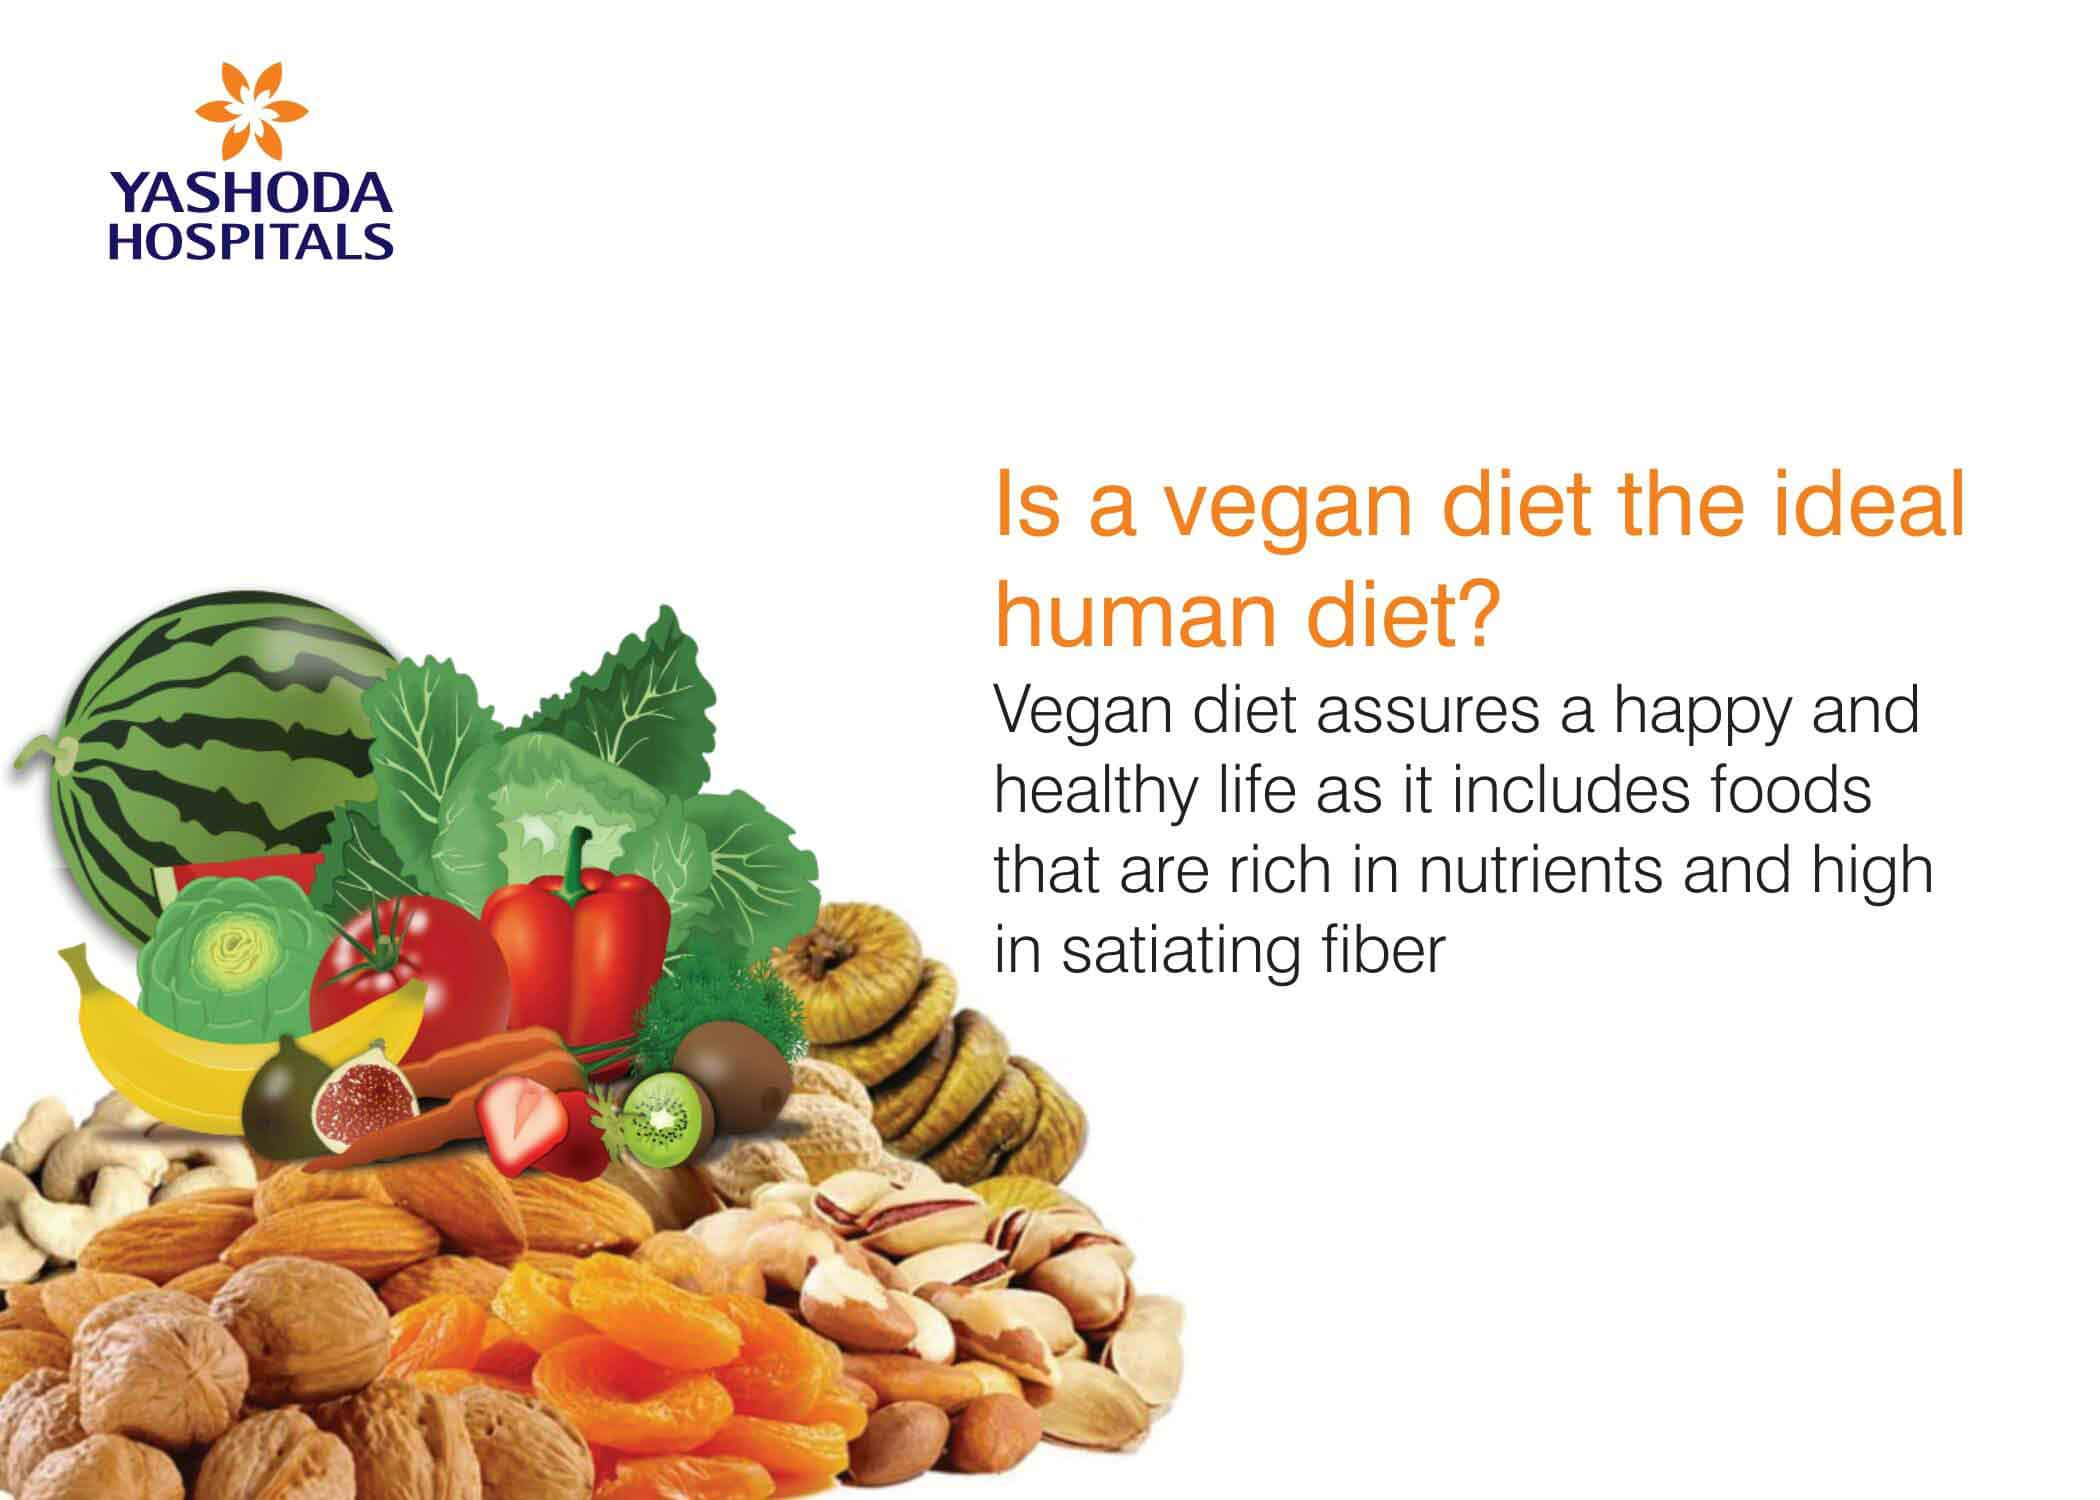 vegan diet the ideal human diet